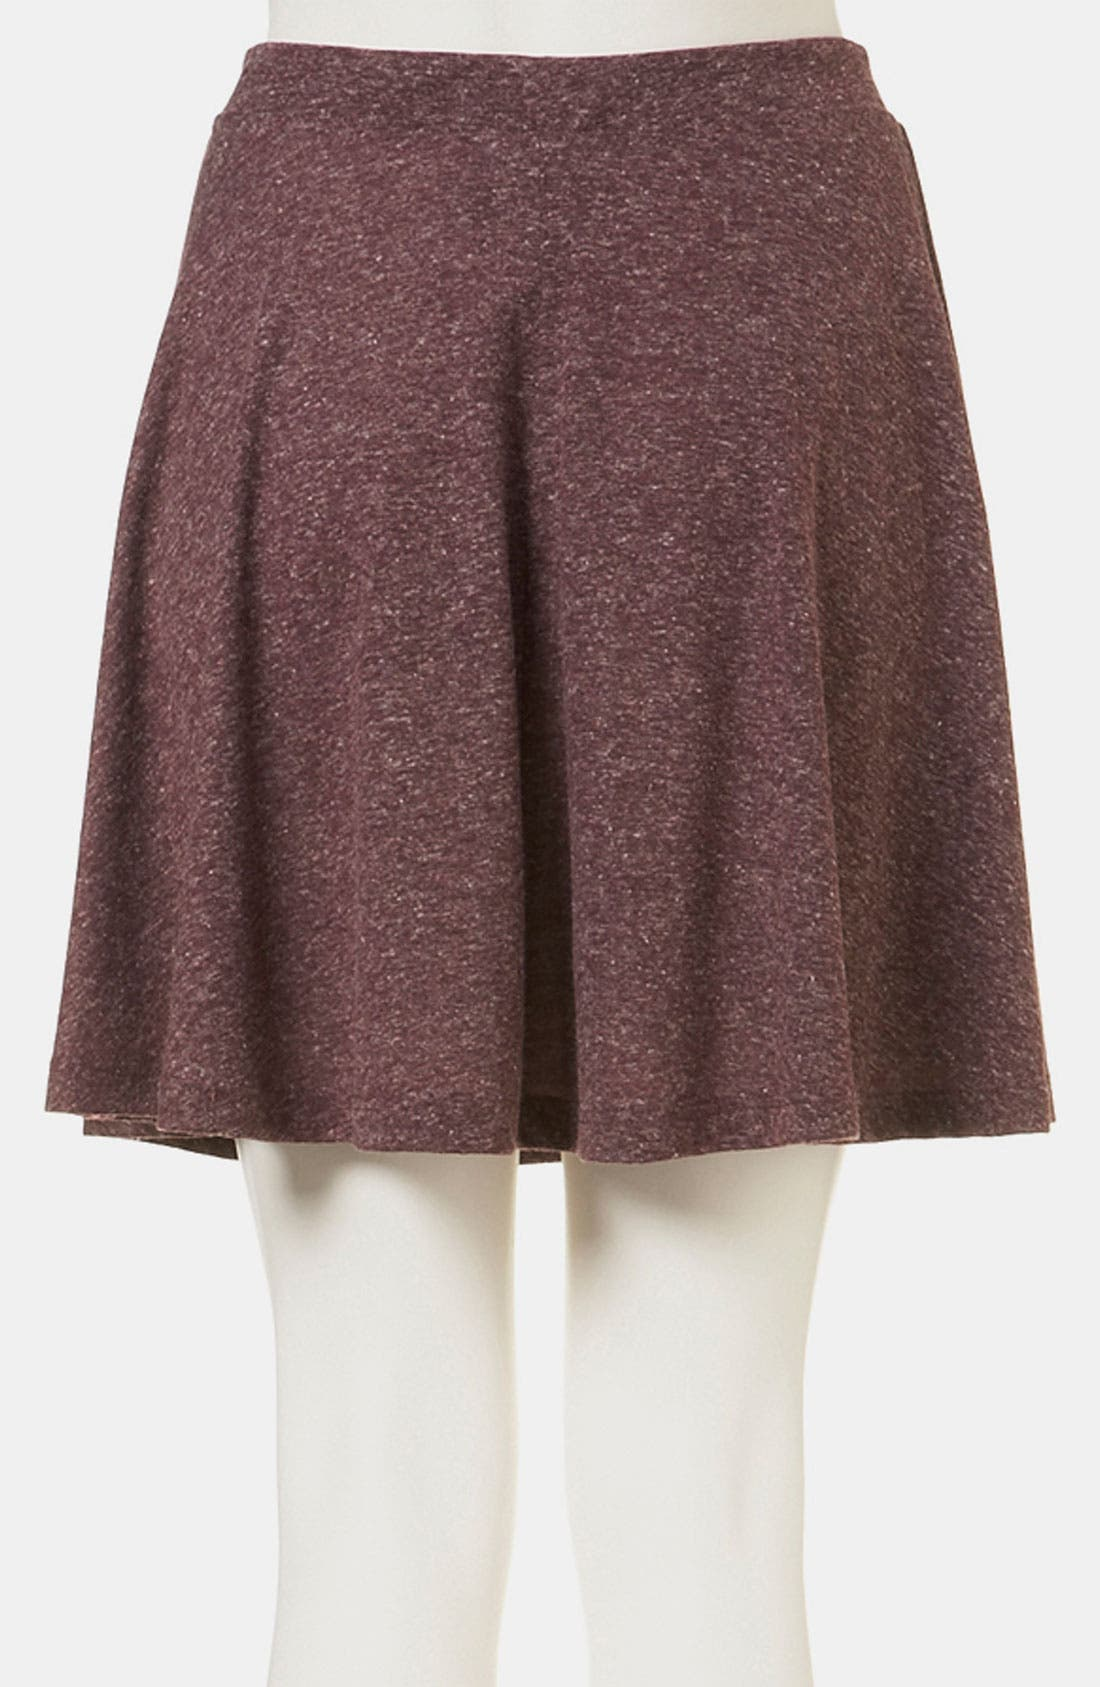 TOPSHOP, 'Andie' Skater Skirt, Alternate thumbnail 3, color, 602